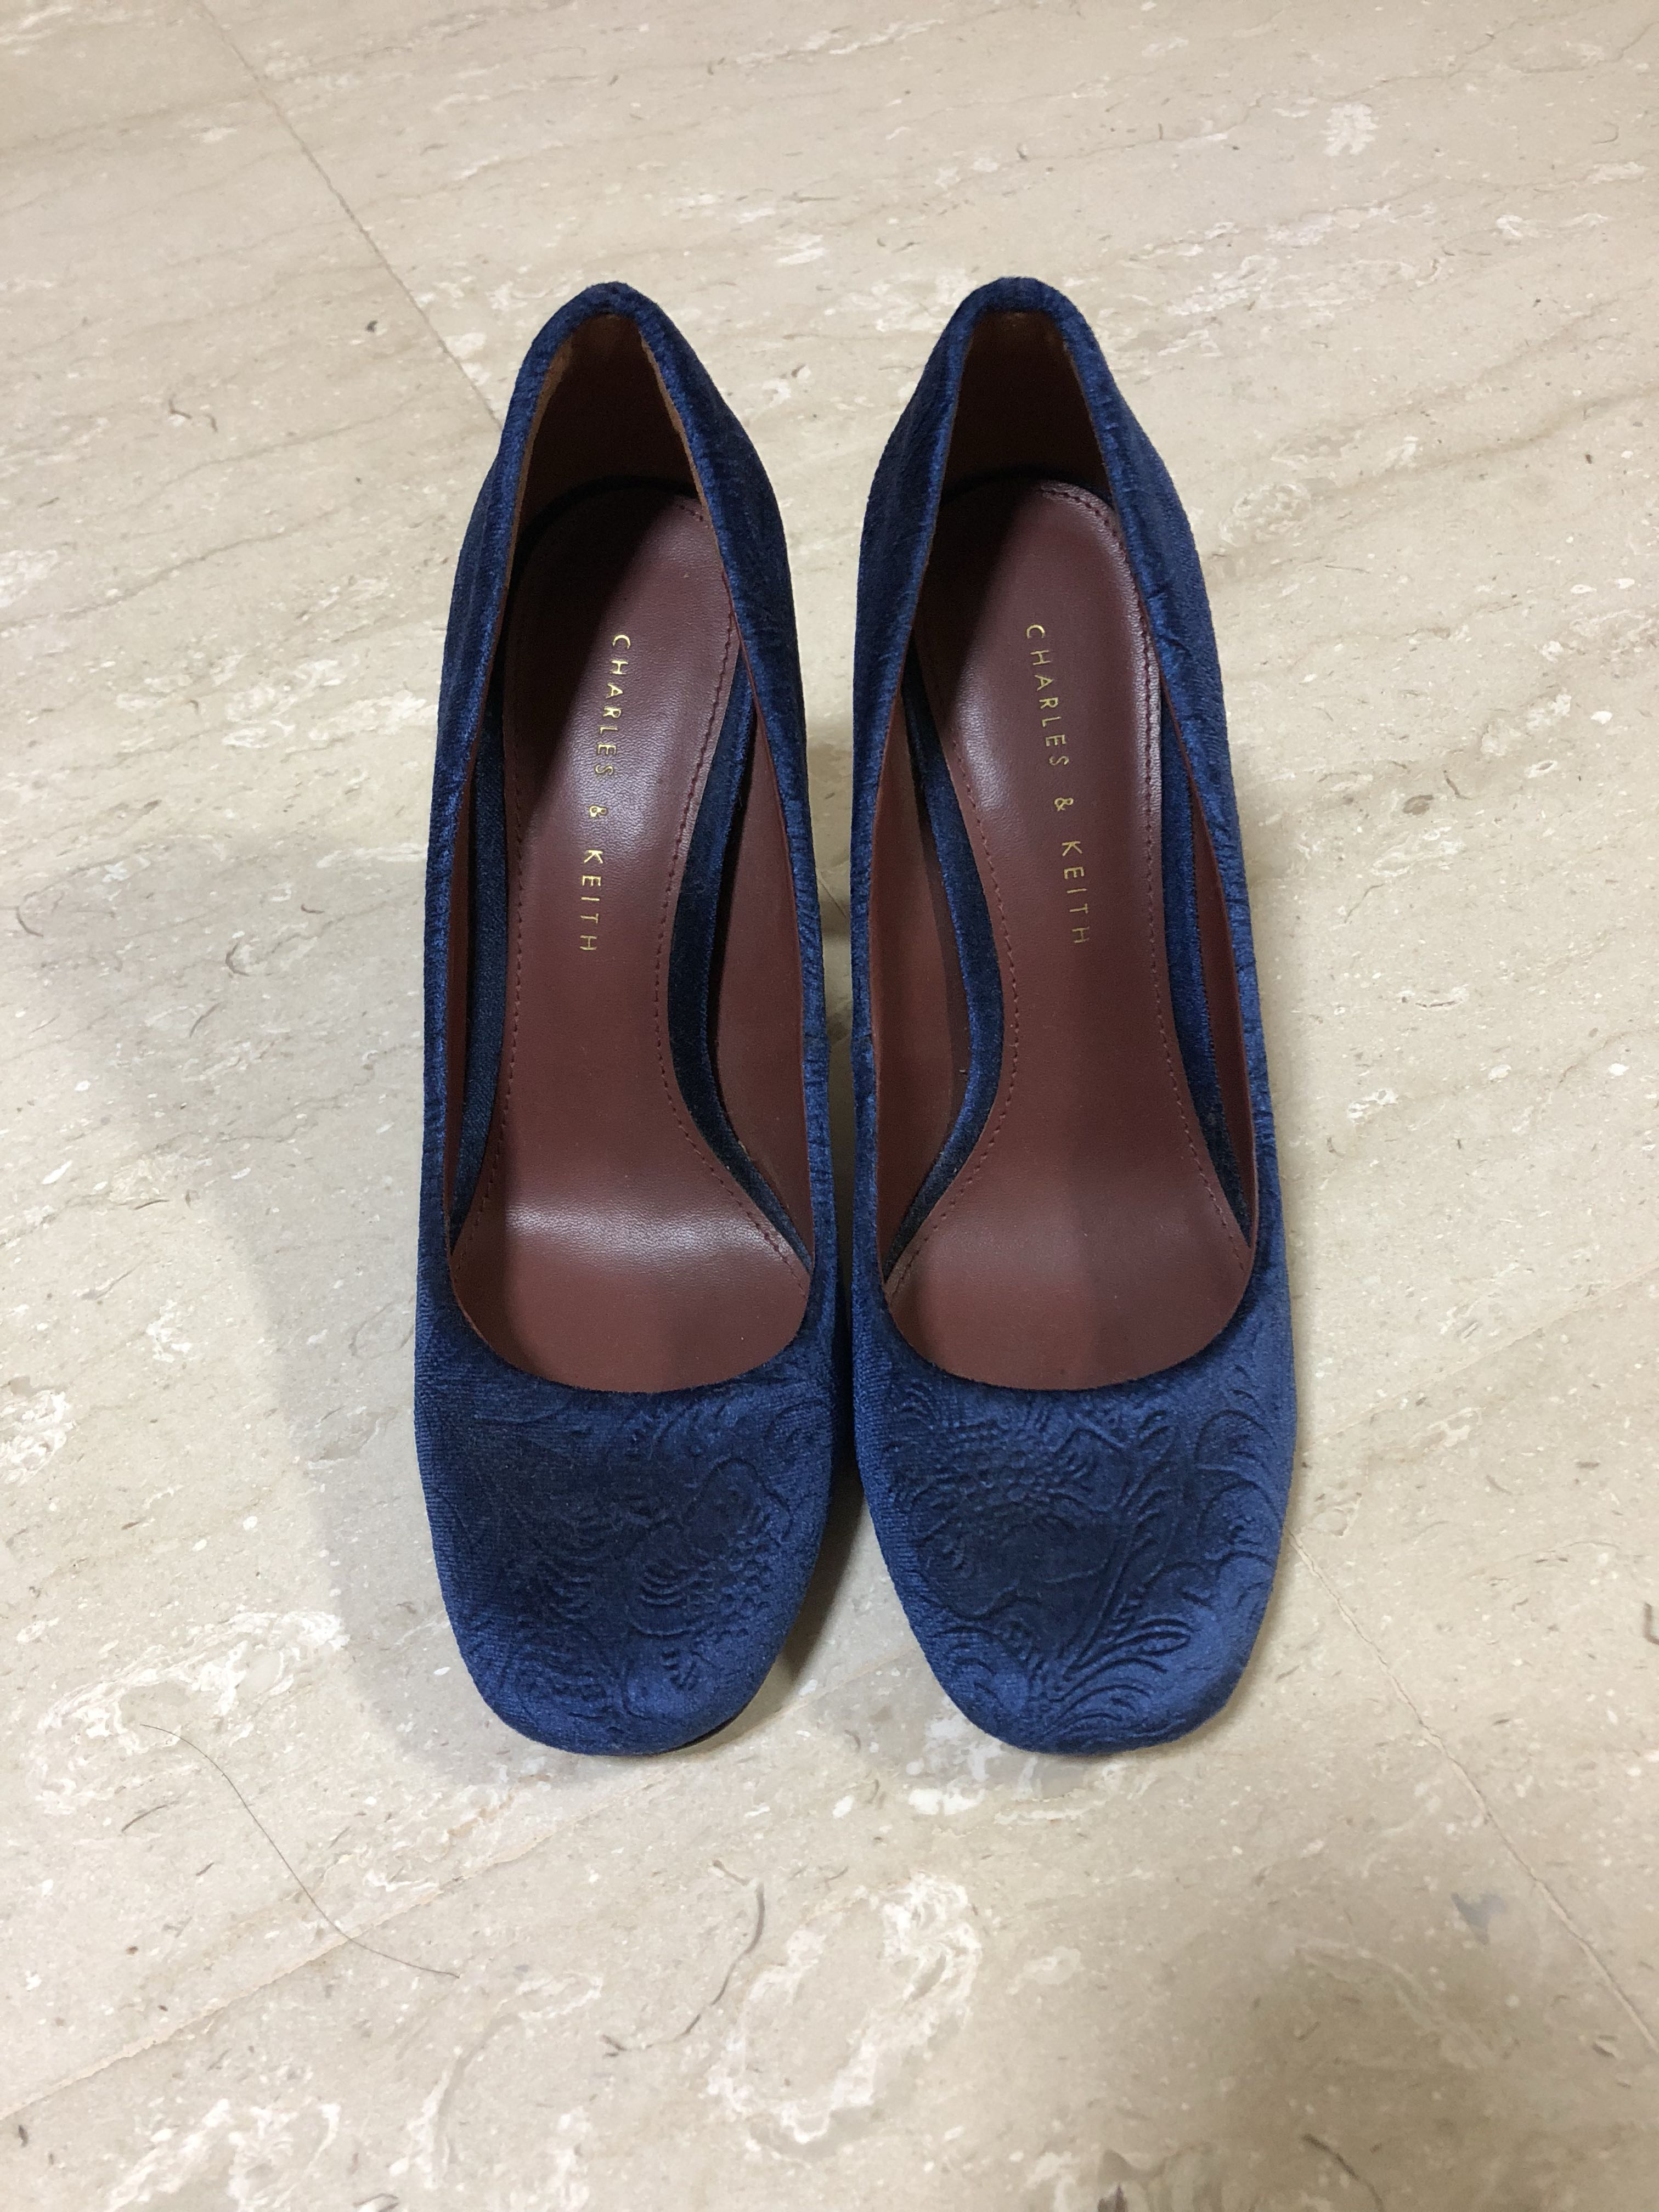 4192a6d24429b Charles & Keith Blue Patterned Velvet Heels, Women's Fashion, Shoes ...